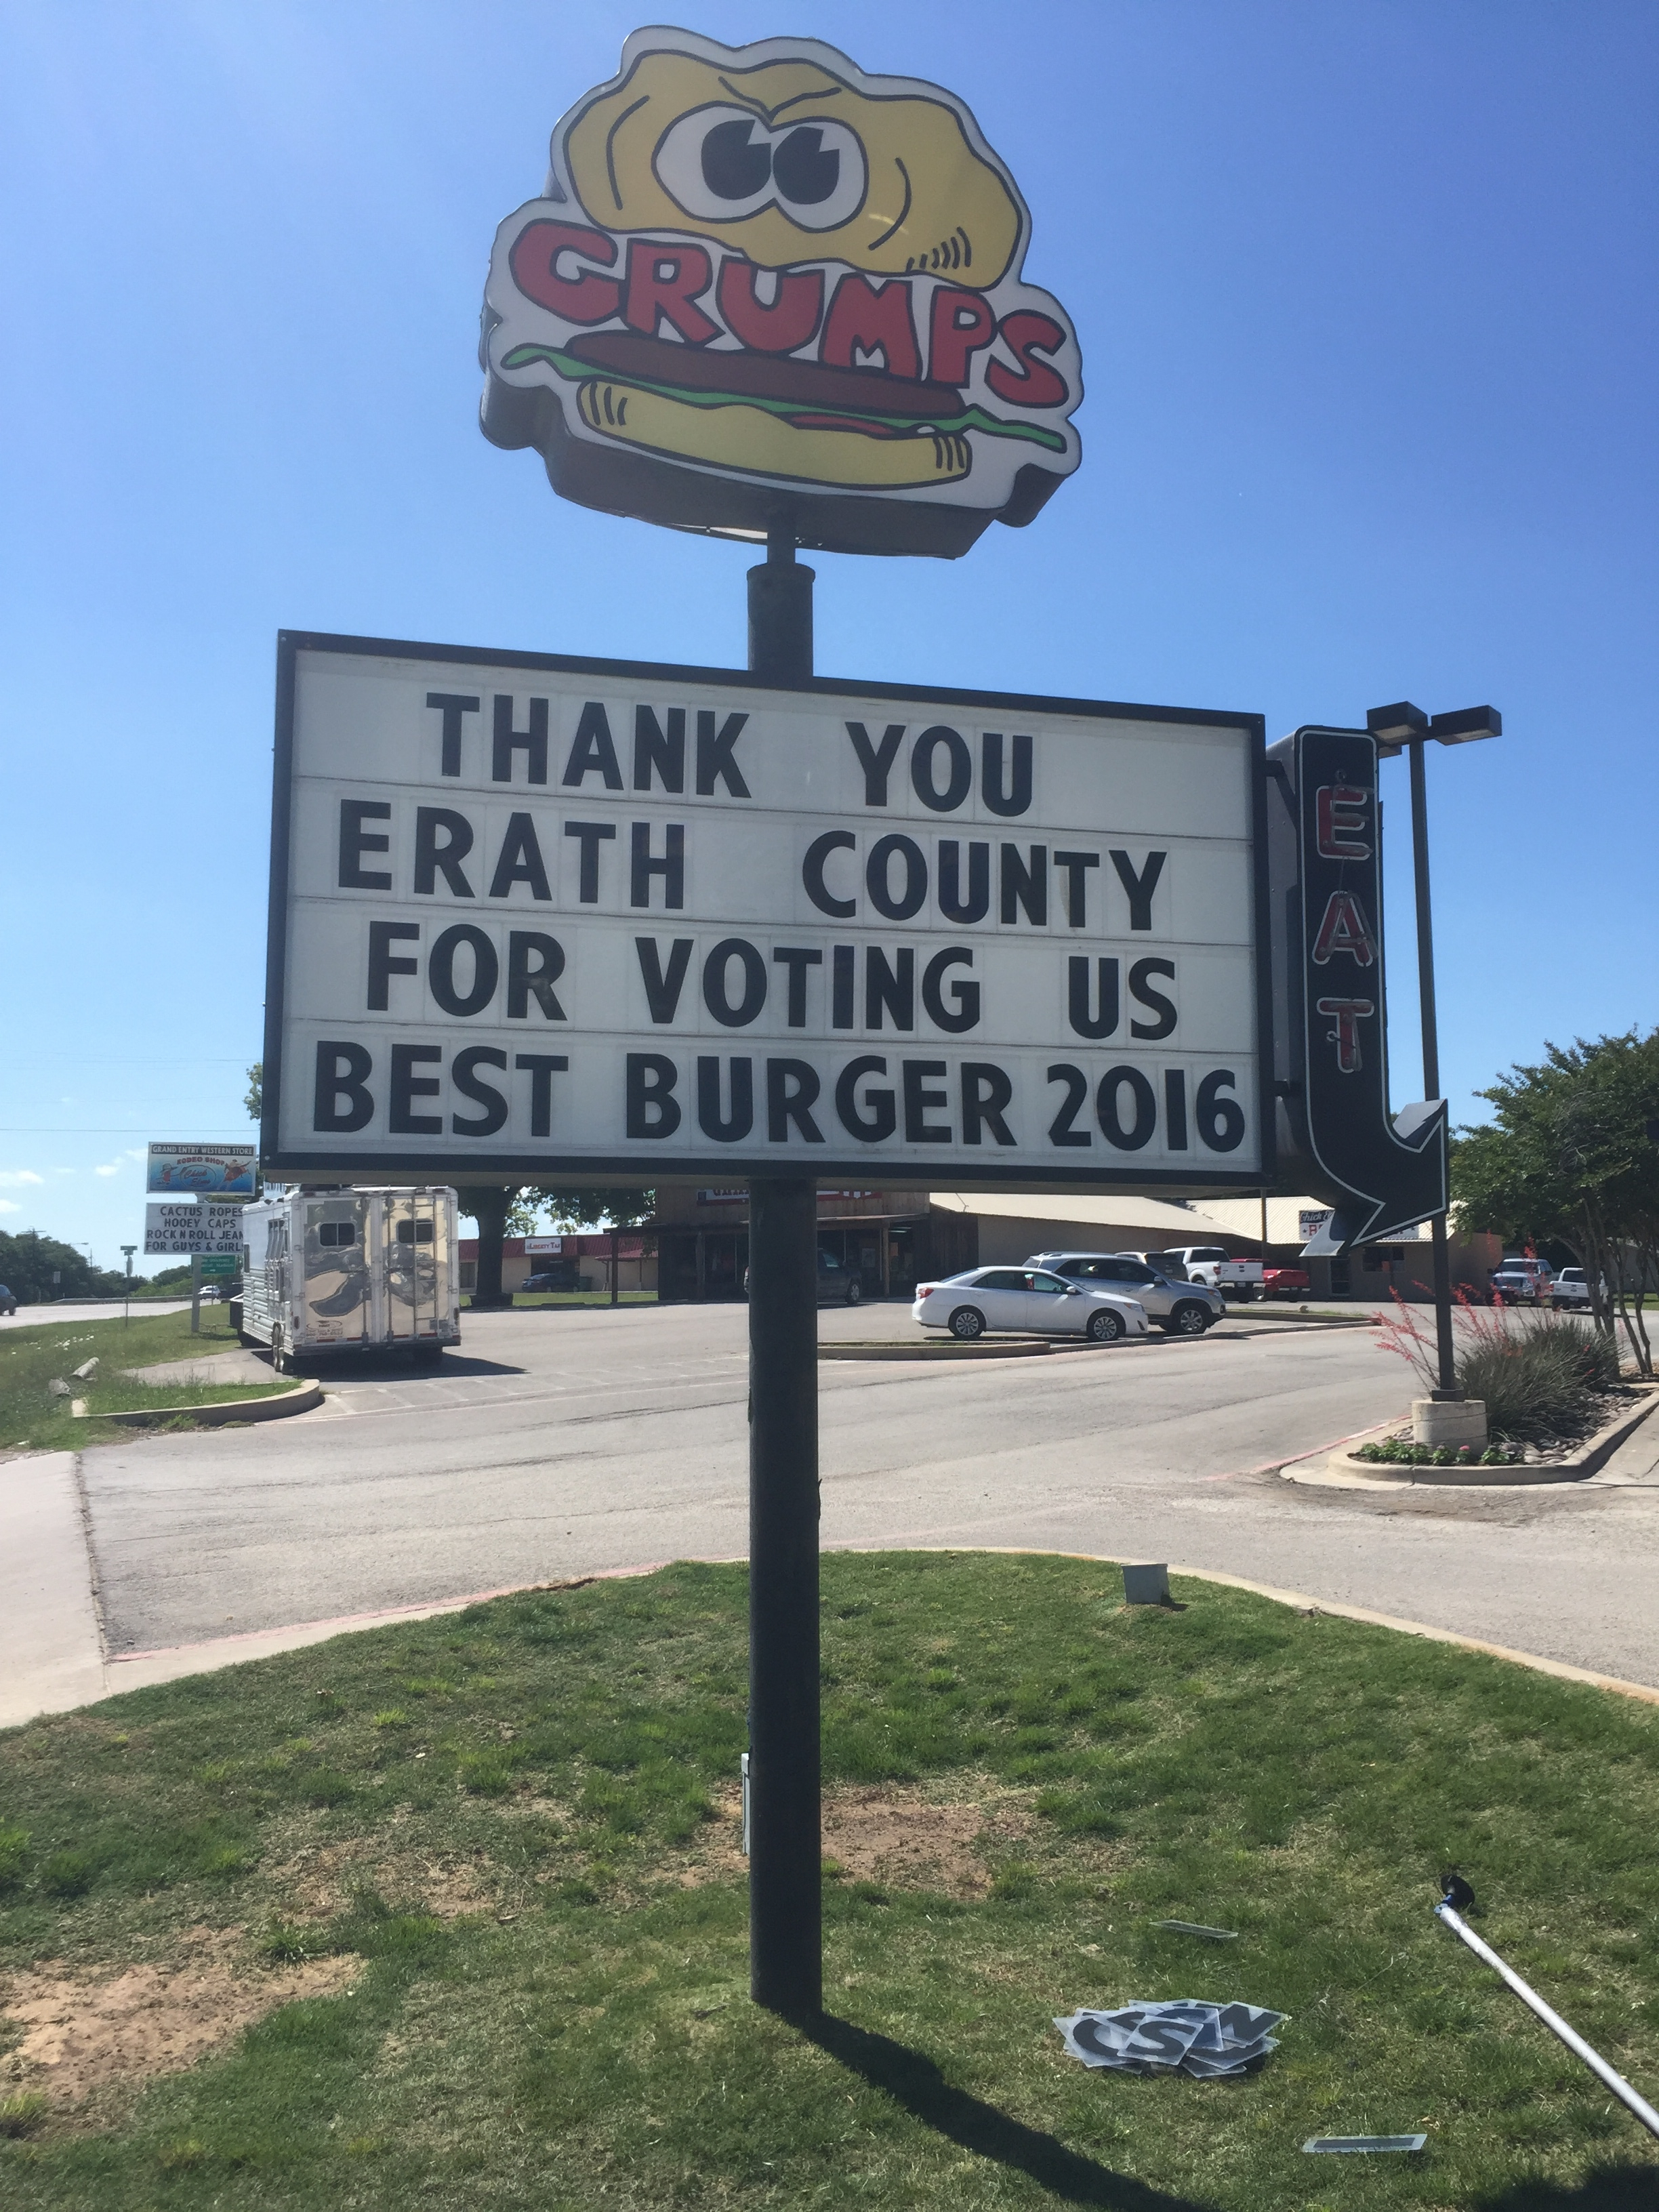 Thank you Erath County!